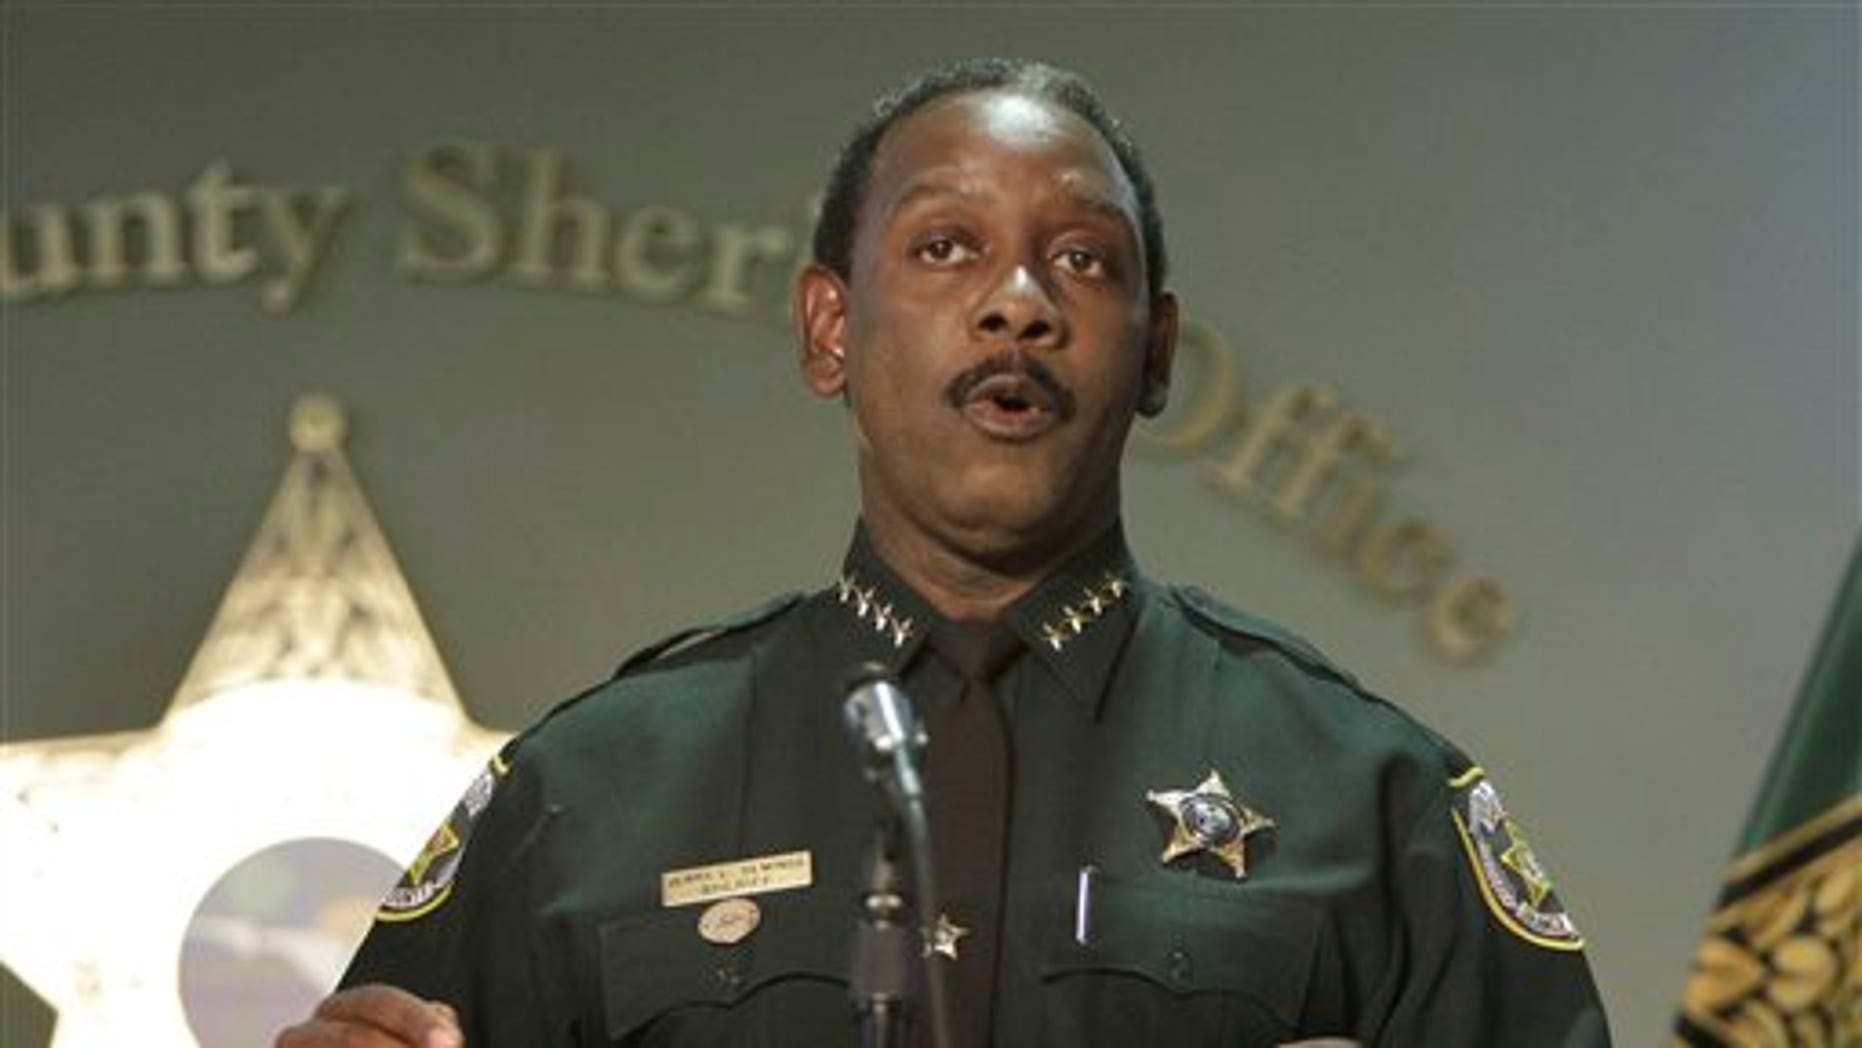 June 12: Orange County Sheriff Jerry Demings makes comments during a news conference with investigators from the Casey Anthony trial in Orlando, Fla. A spokeswoman for a prosecutor's office says Casey Anthony's mother will not face perjury charges for testimony during her daughter's murder trial.